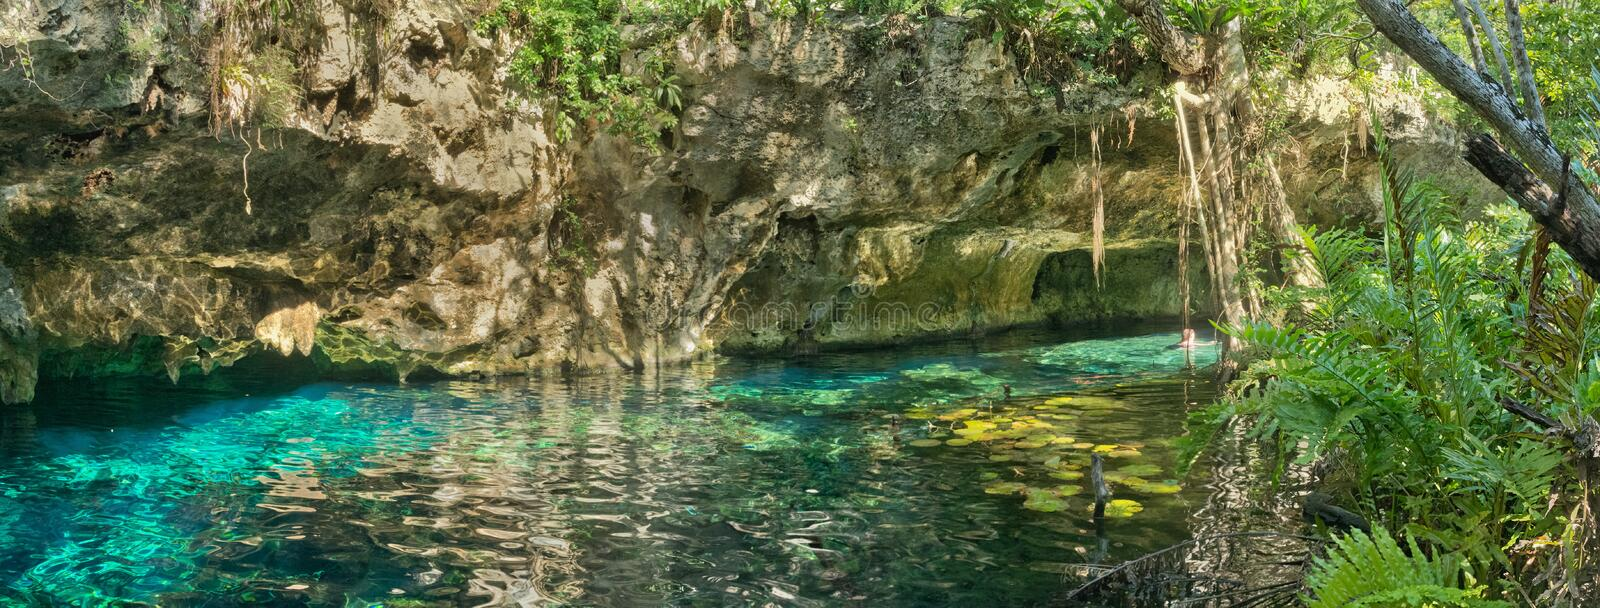 Cenote grand au Mexique images libres de droits